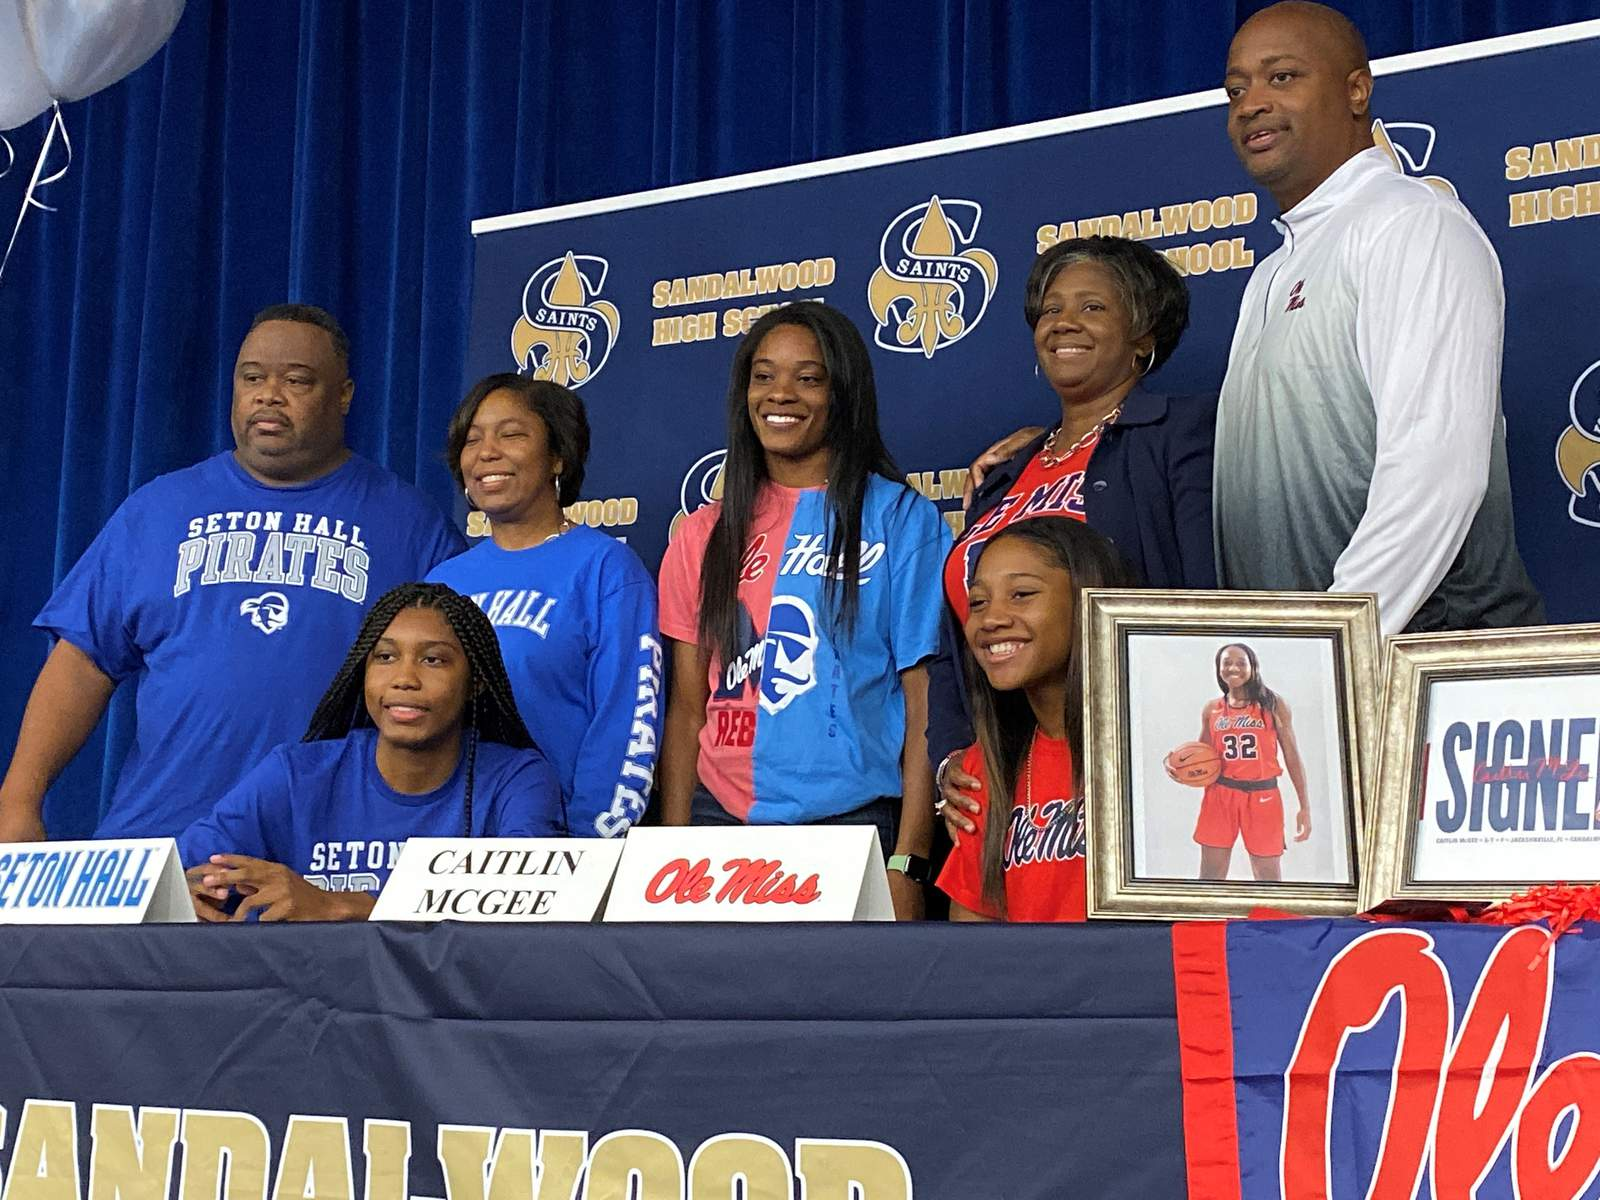 National Signing Period Begins For Area High School Athletes